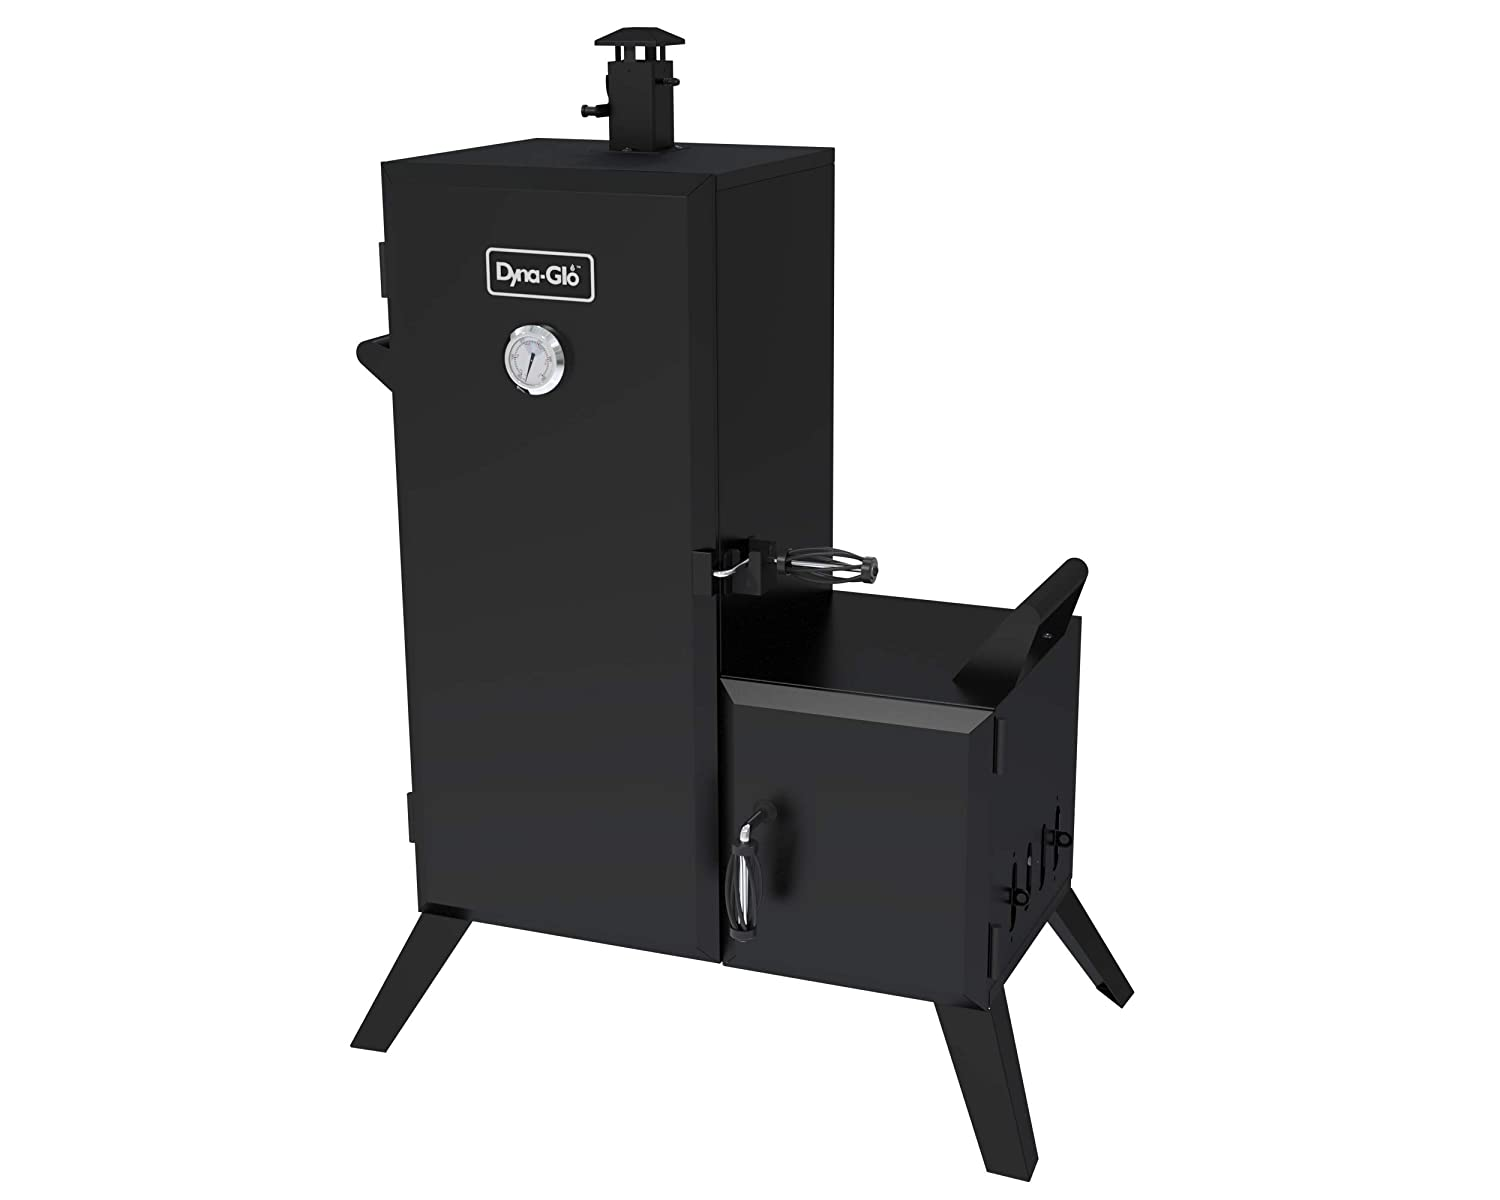 Dyna-Glo Vertical Charcoal Smoker